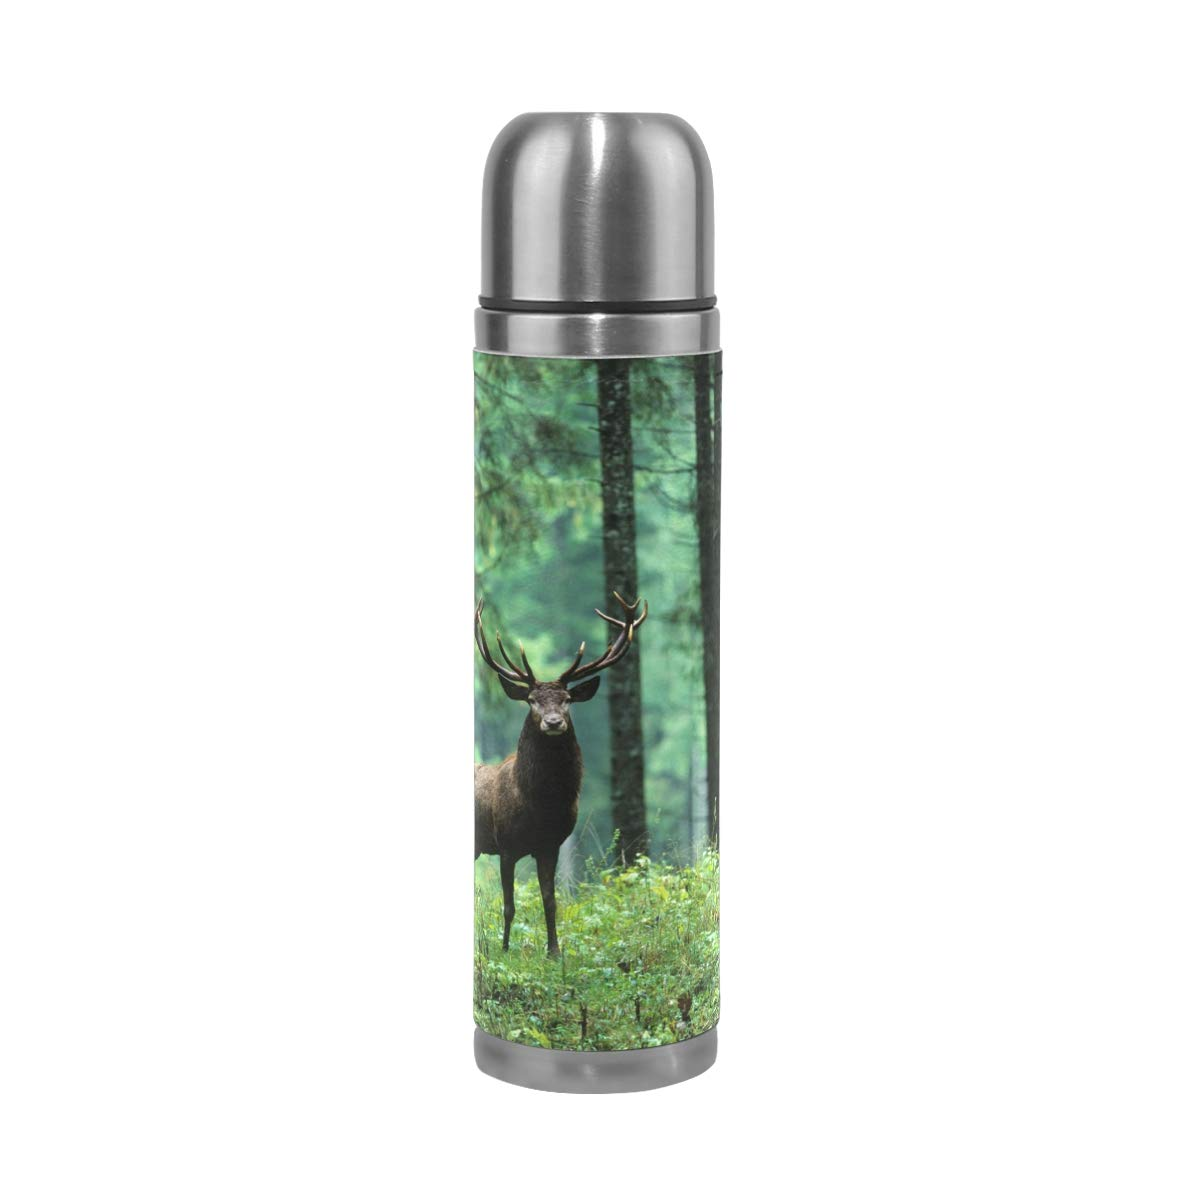 Double Wall Vacuum Insulated Stainless Steel Water Bottle Elk in Forest Sunset Palm Trees Leak Proof Sports Coffee Maker Bottle